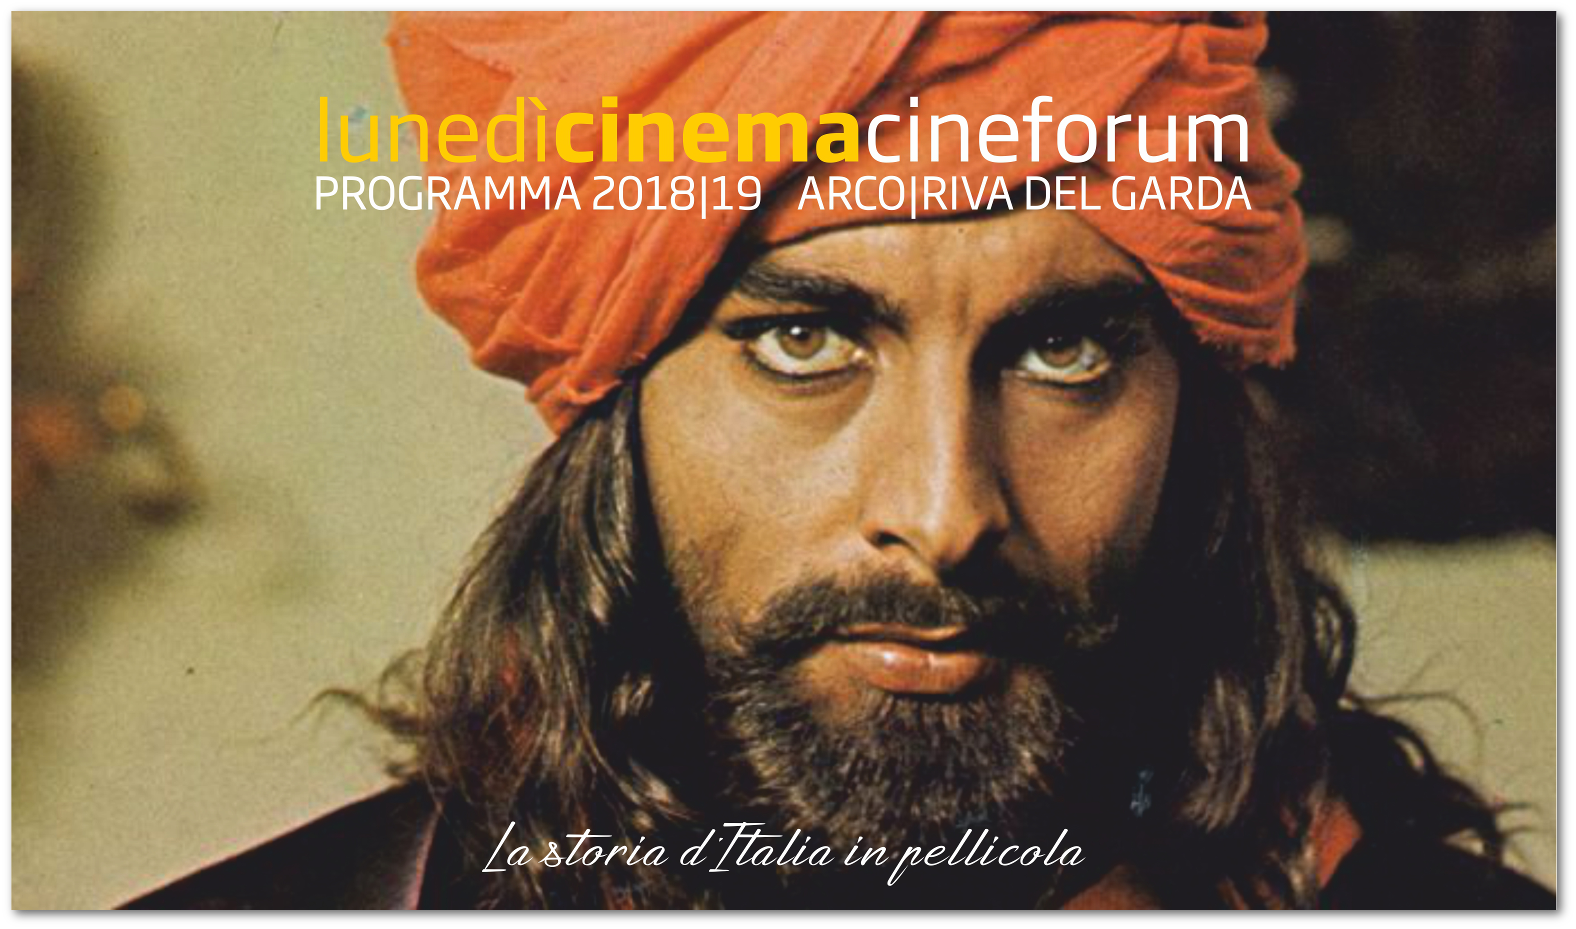 LunedìCinema Cineforum 2018 -2019